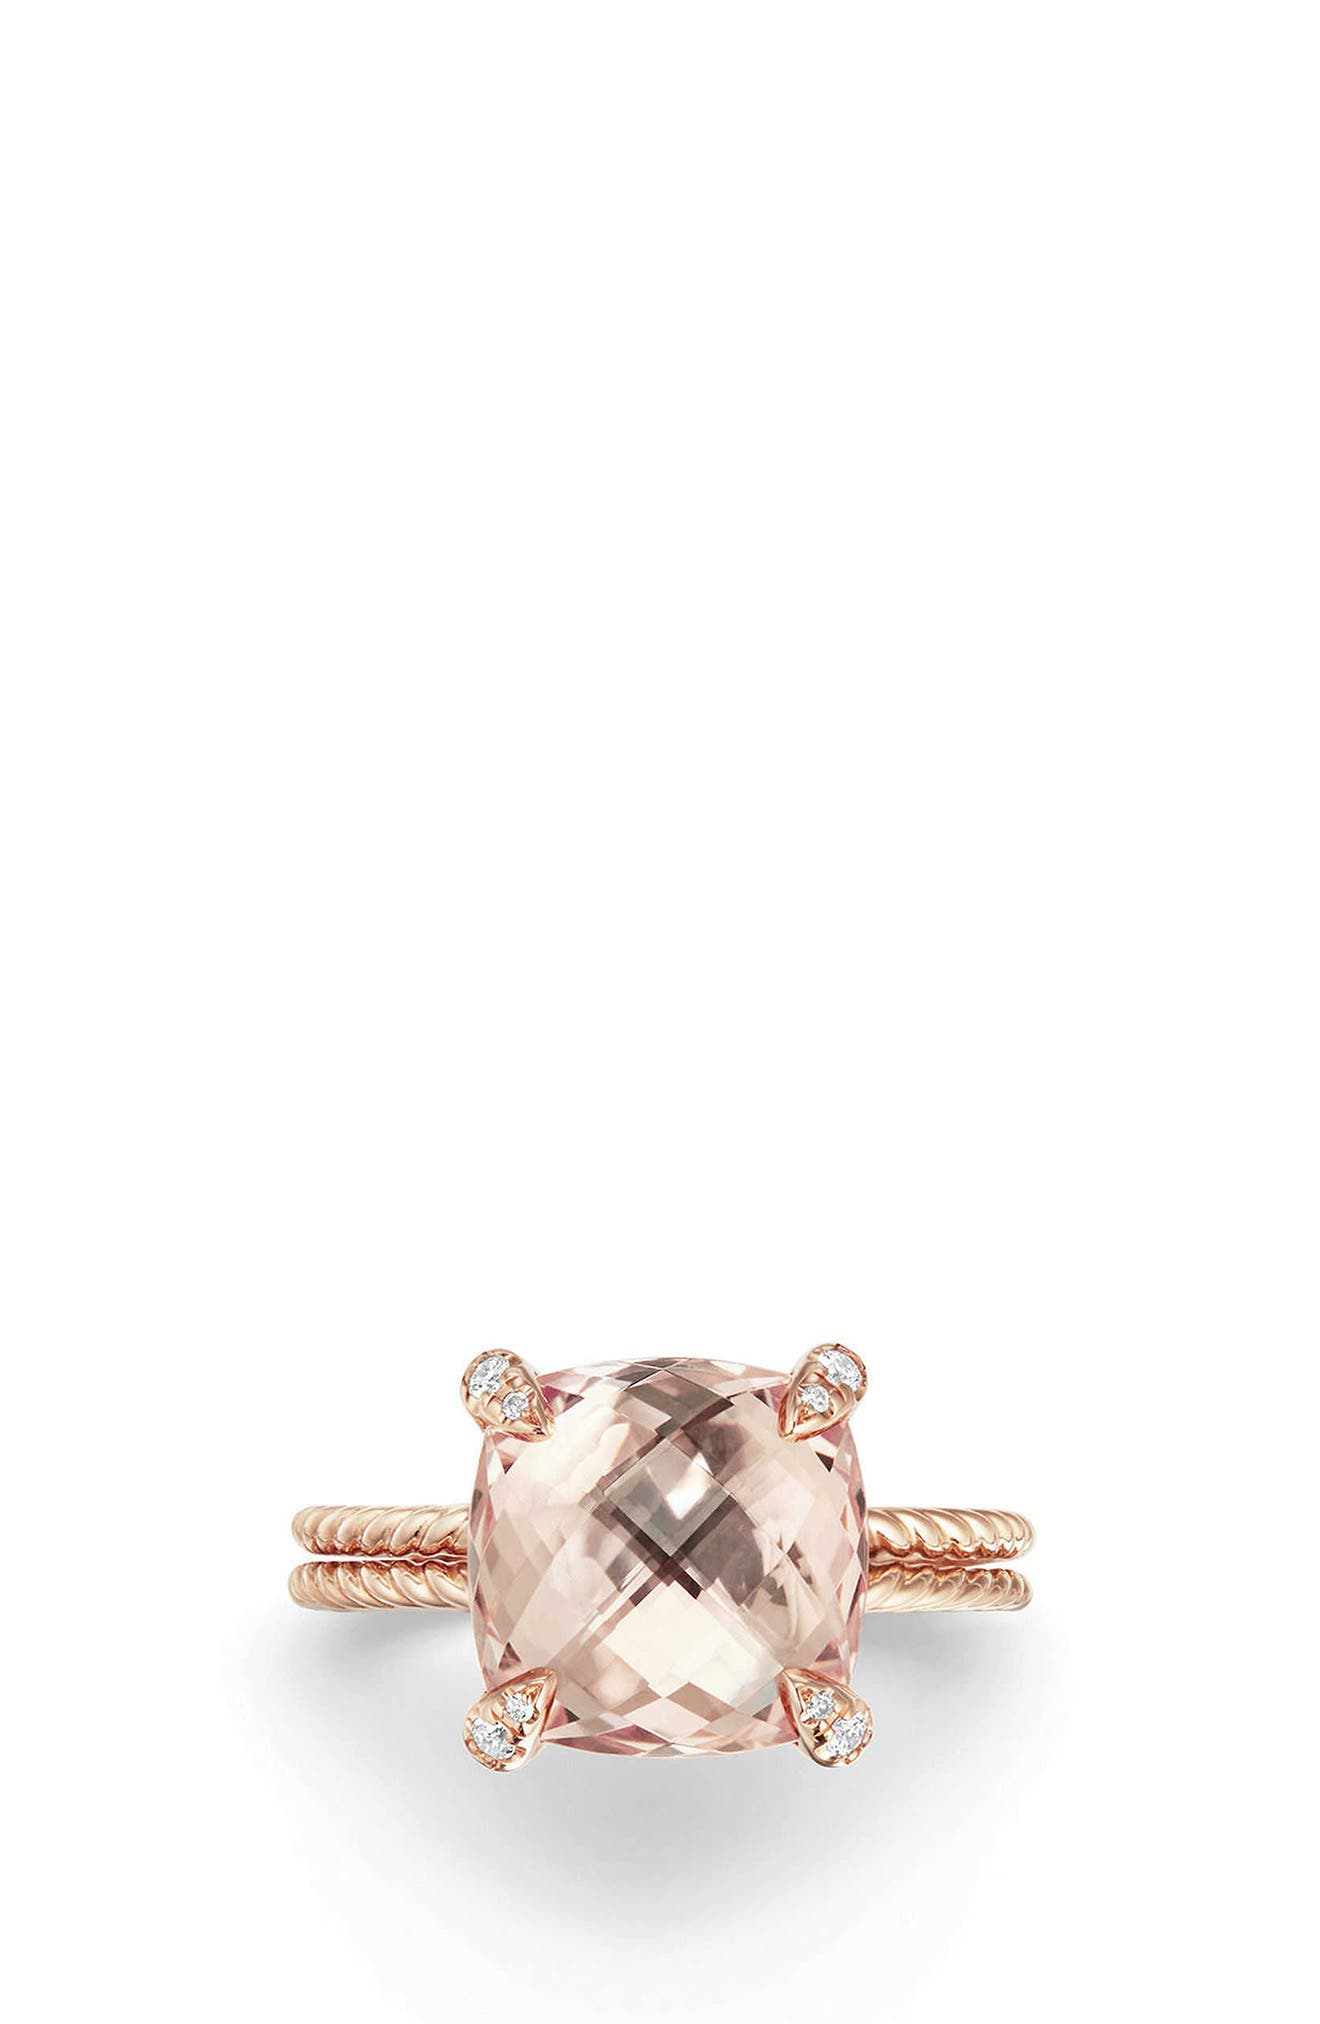 Chatelaine<sup>®</sup> Morganite & Diamond Ring in 18K Rose Gold,                         Main,                         color, ROSE GOLD/ DIAMOND/ MORGANITE